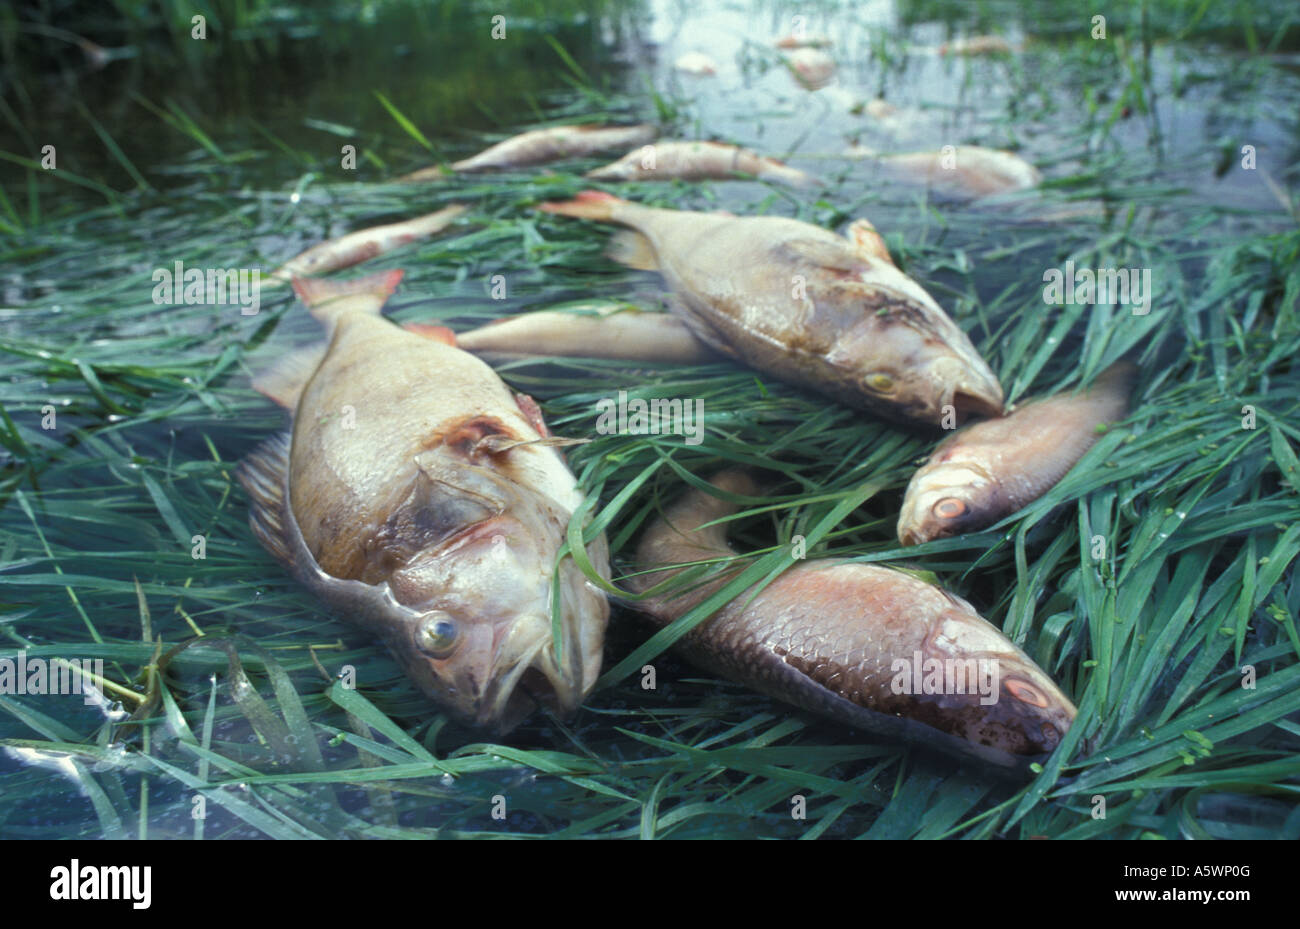 Fish killed following accident at sewage treatment works near Defford Bridge Worcestershire England - Stock Image